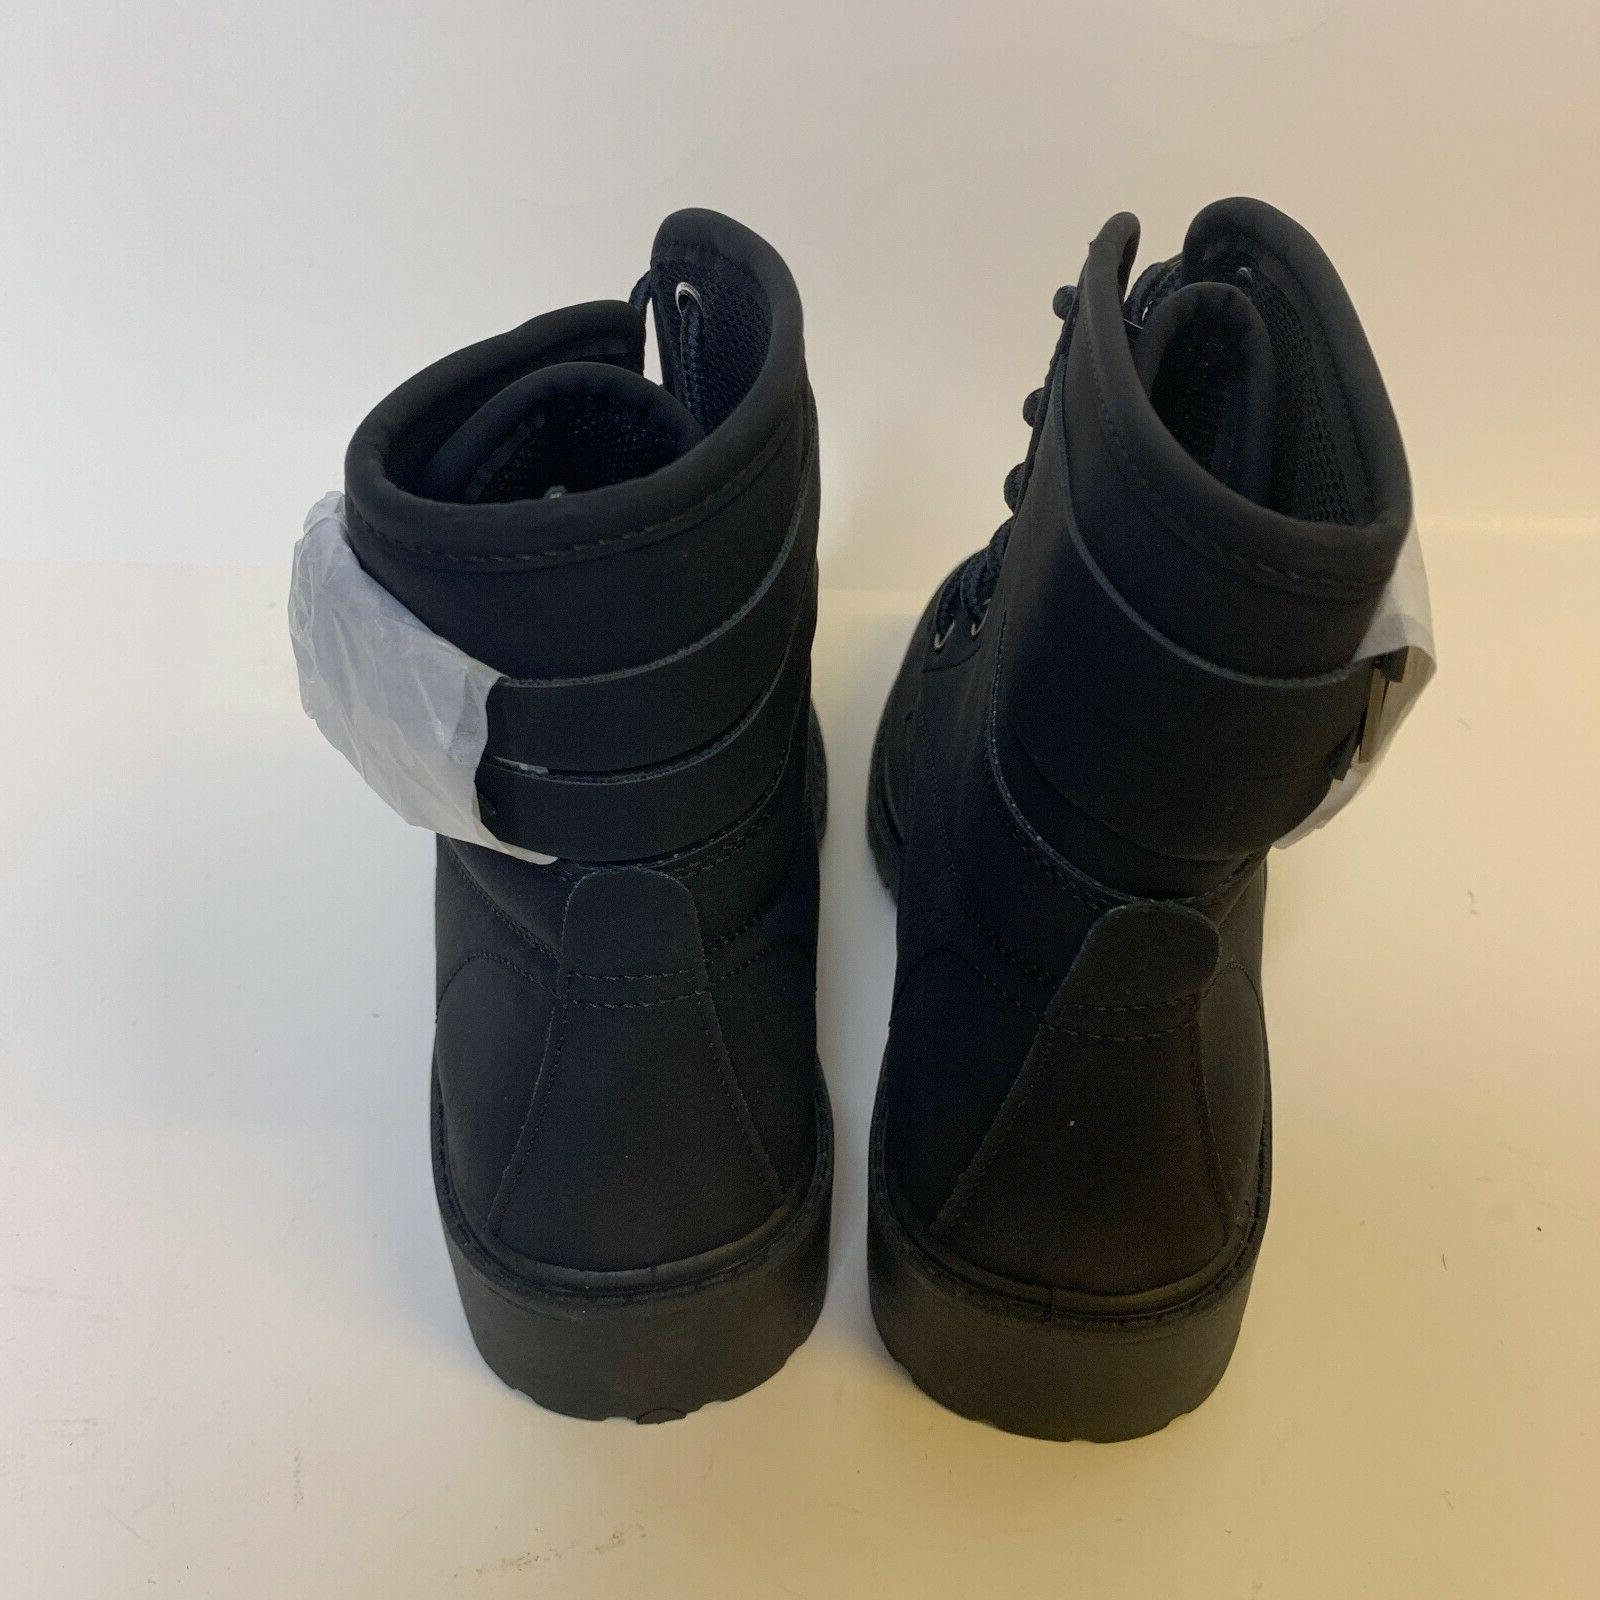 Forever Link Boots Whitney-26 Black Combat Military Style sz 9 NEW